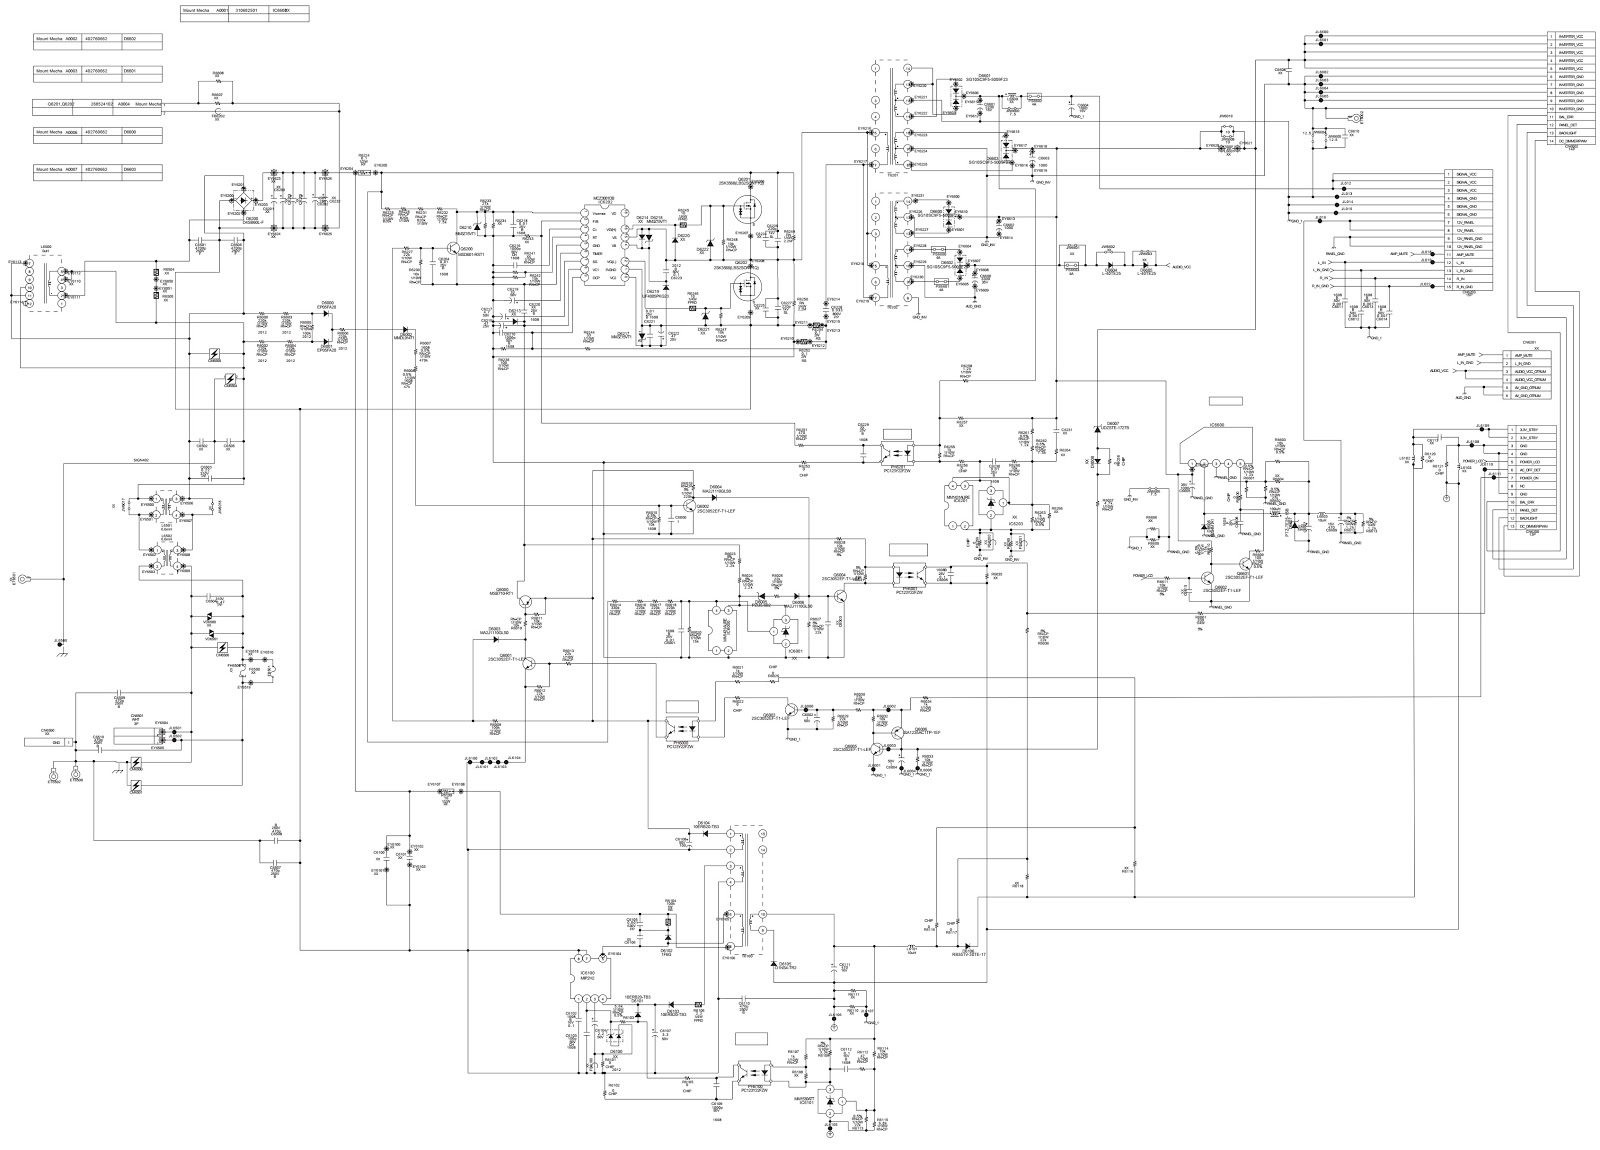 medium resolution of kdl37v4000 sony lcd tv smps circuit diagram 1 876 635 12 se2ag